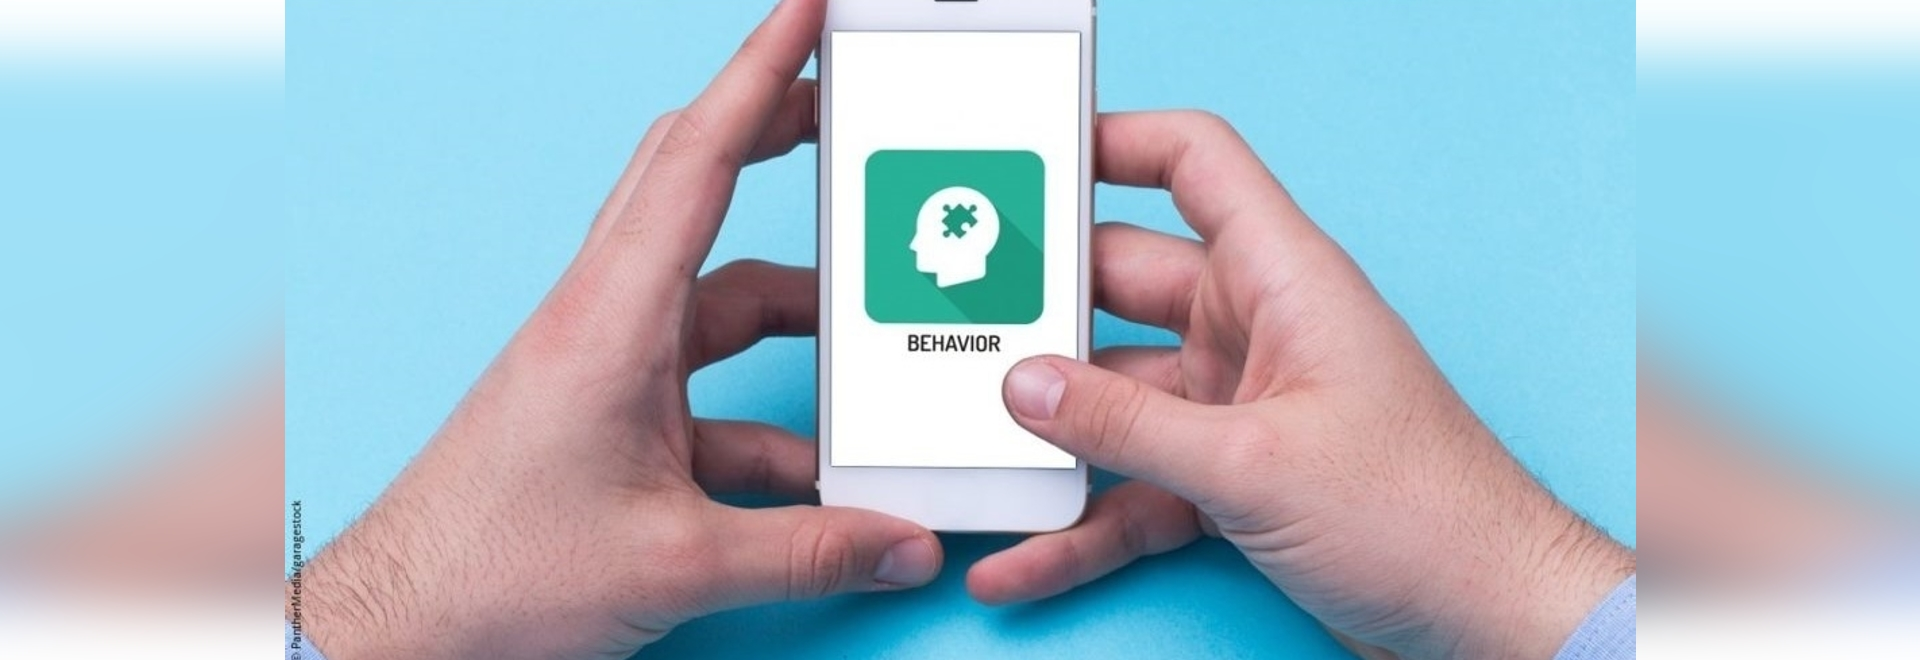 Most apps that have been admitted as DiGA until now support the therapy of psychological disorders.